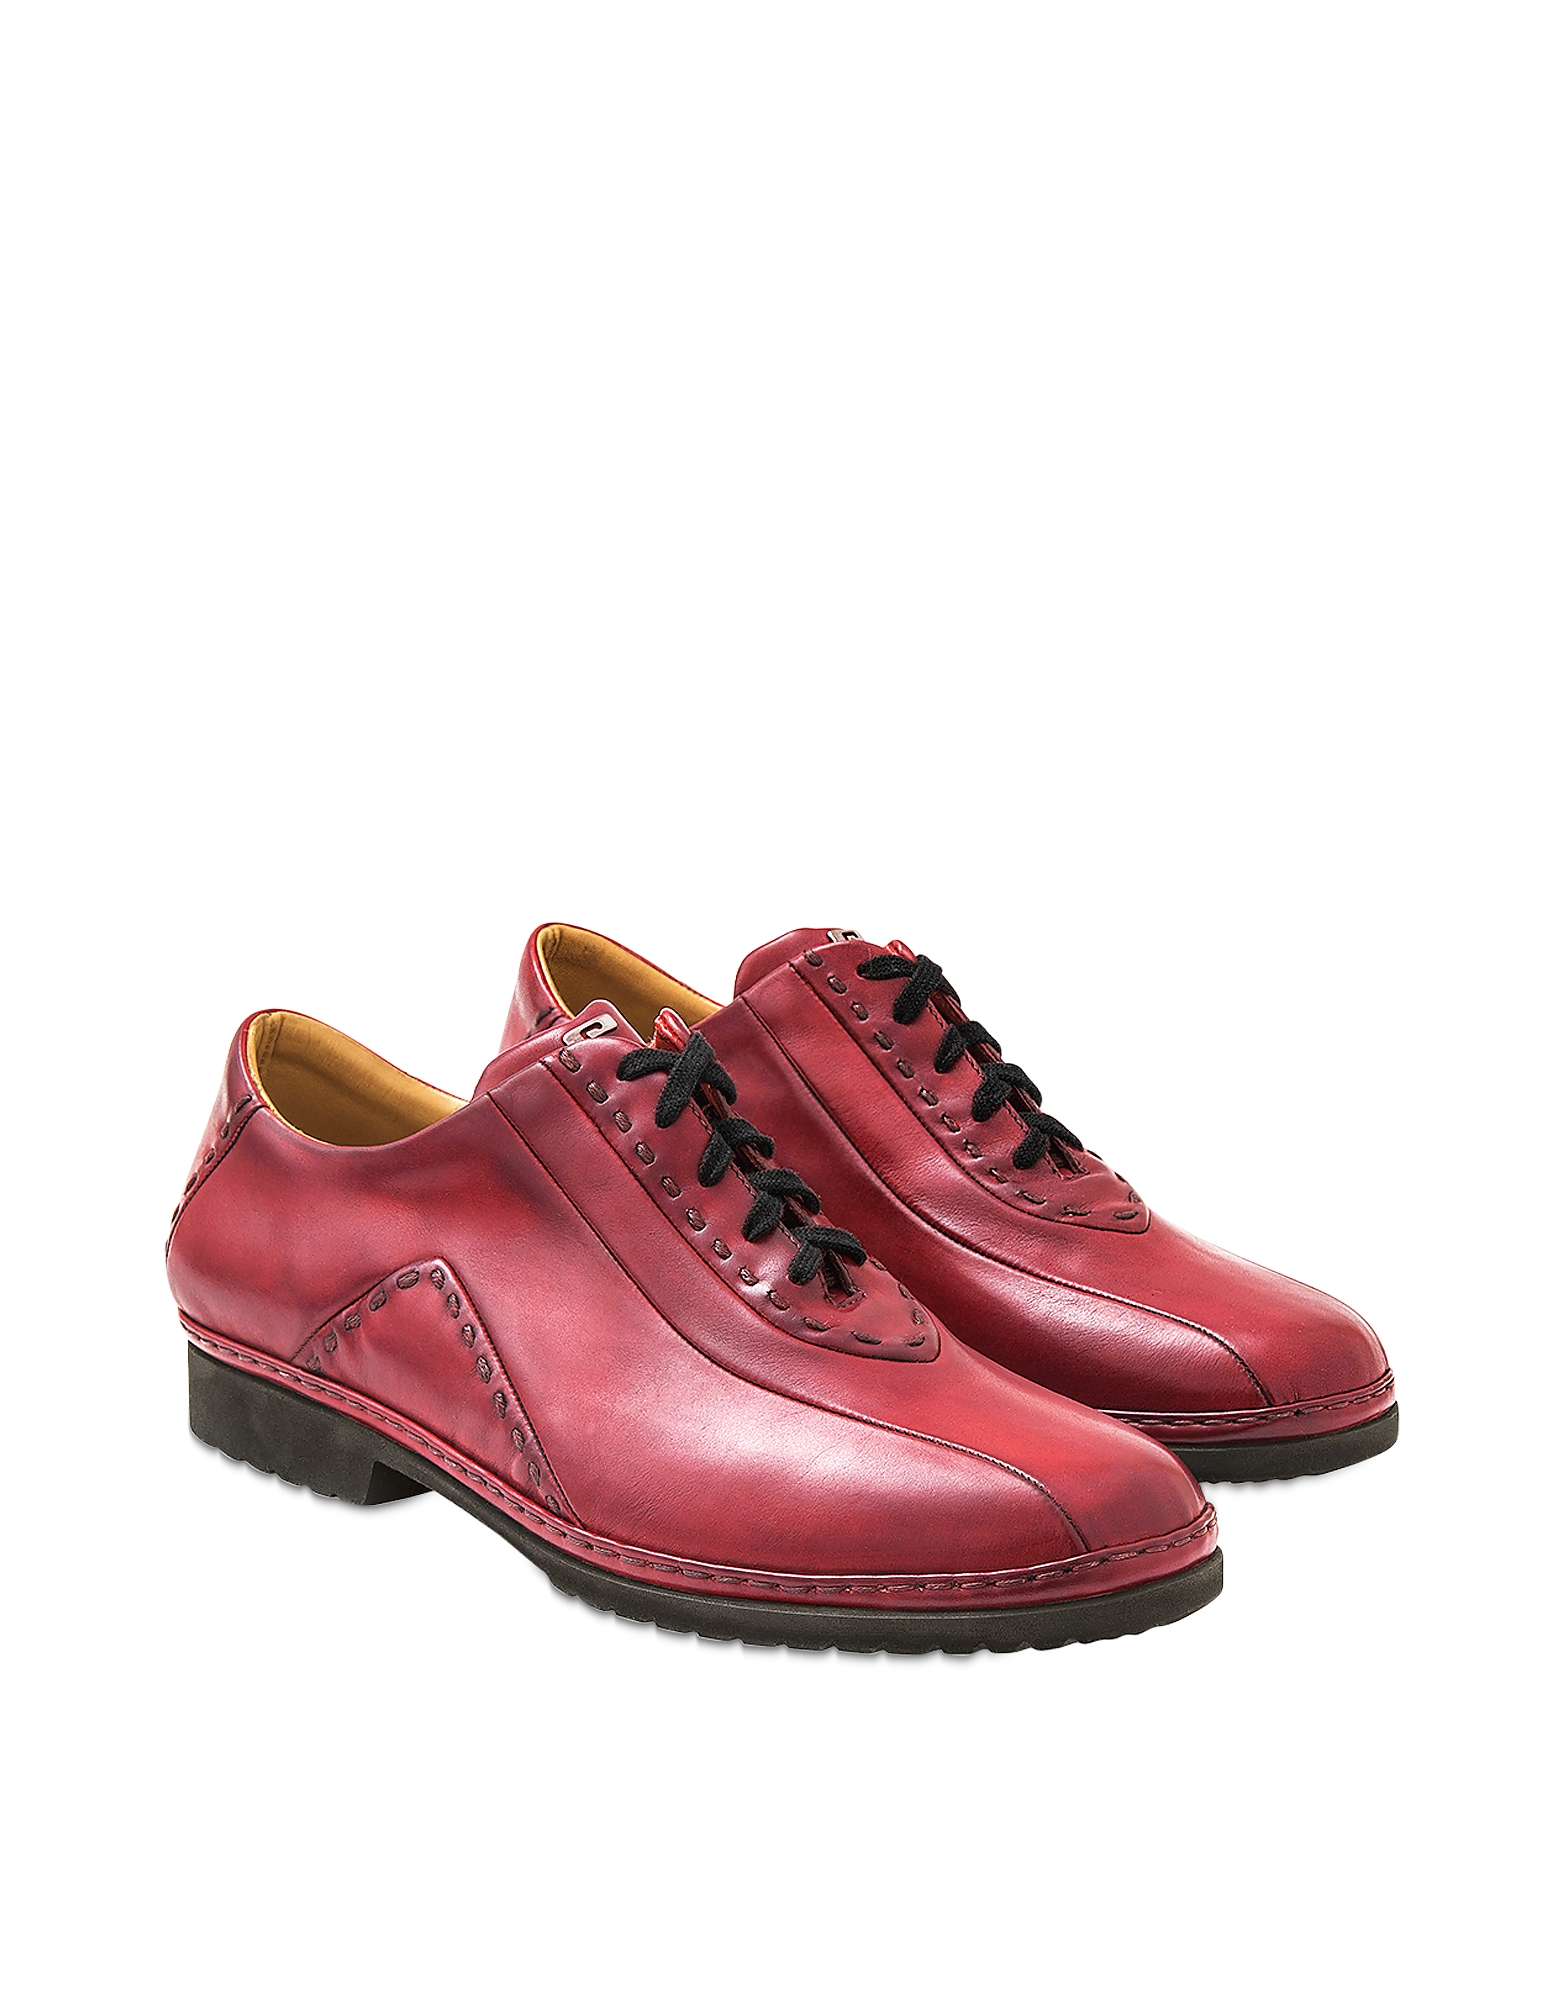 Burgundy Italian Hand Made Leather Lace-up Shoes